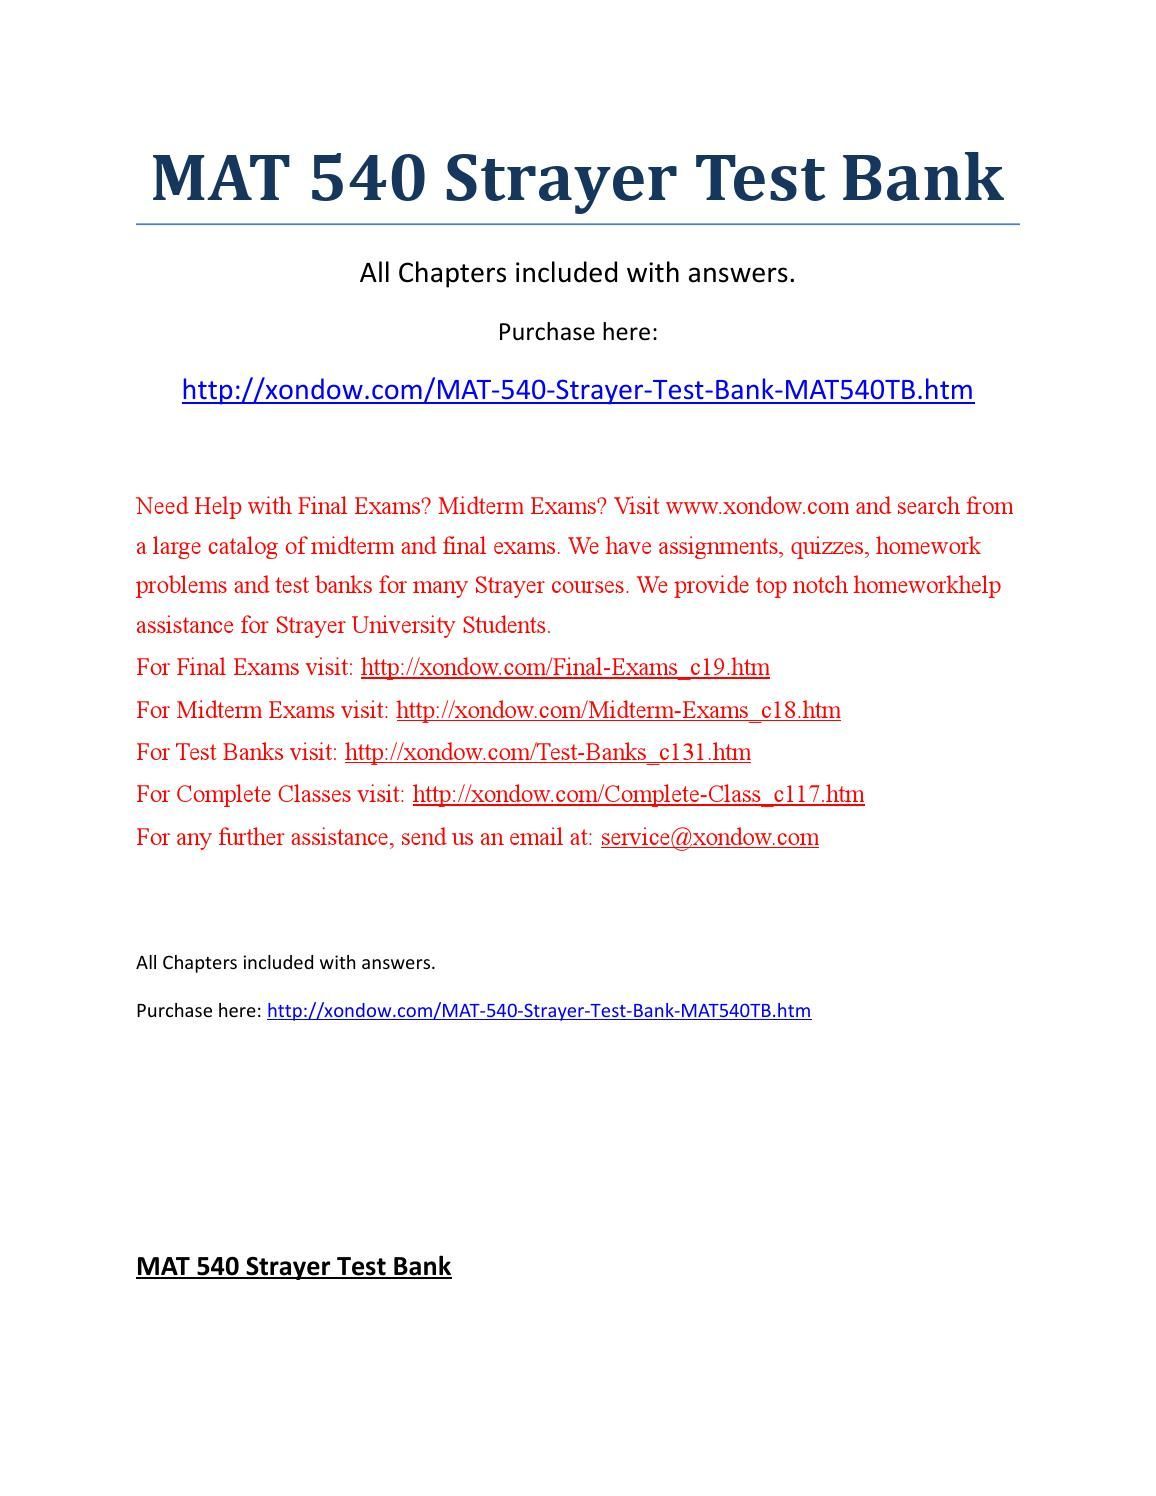 Pin On Mat 540 Strayer All Quizzes Midterm And Final Exams Strayer Latest